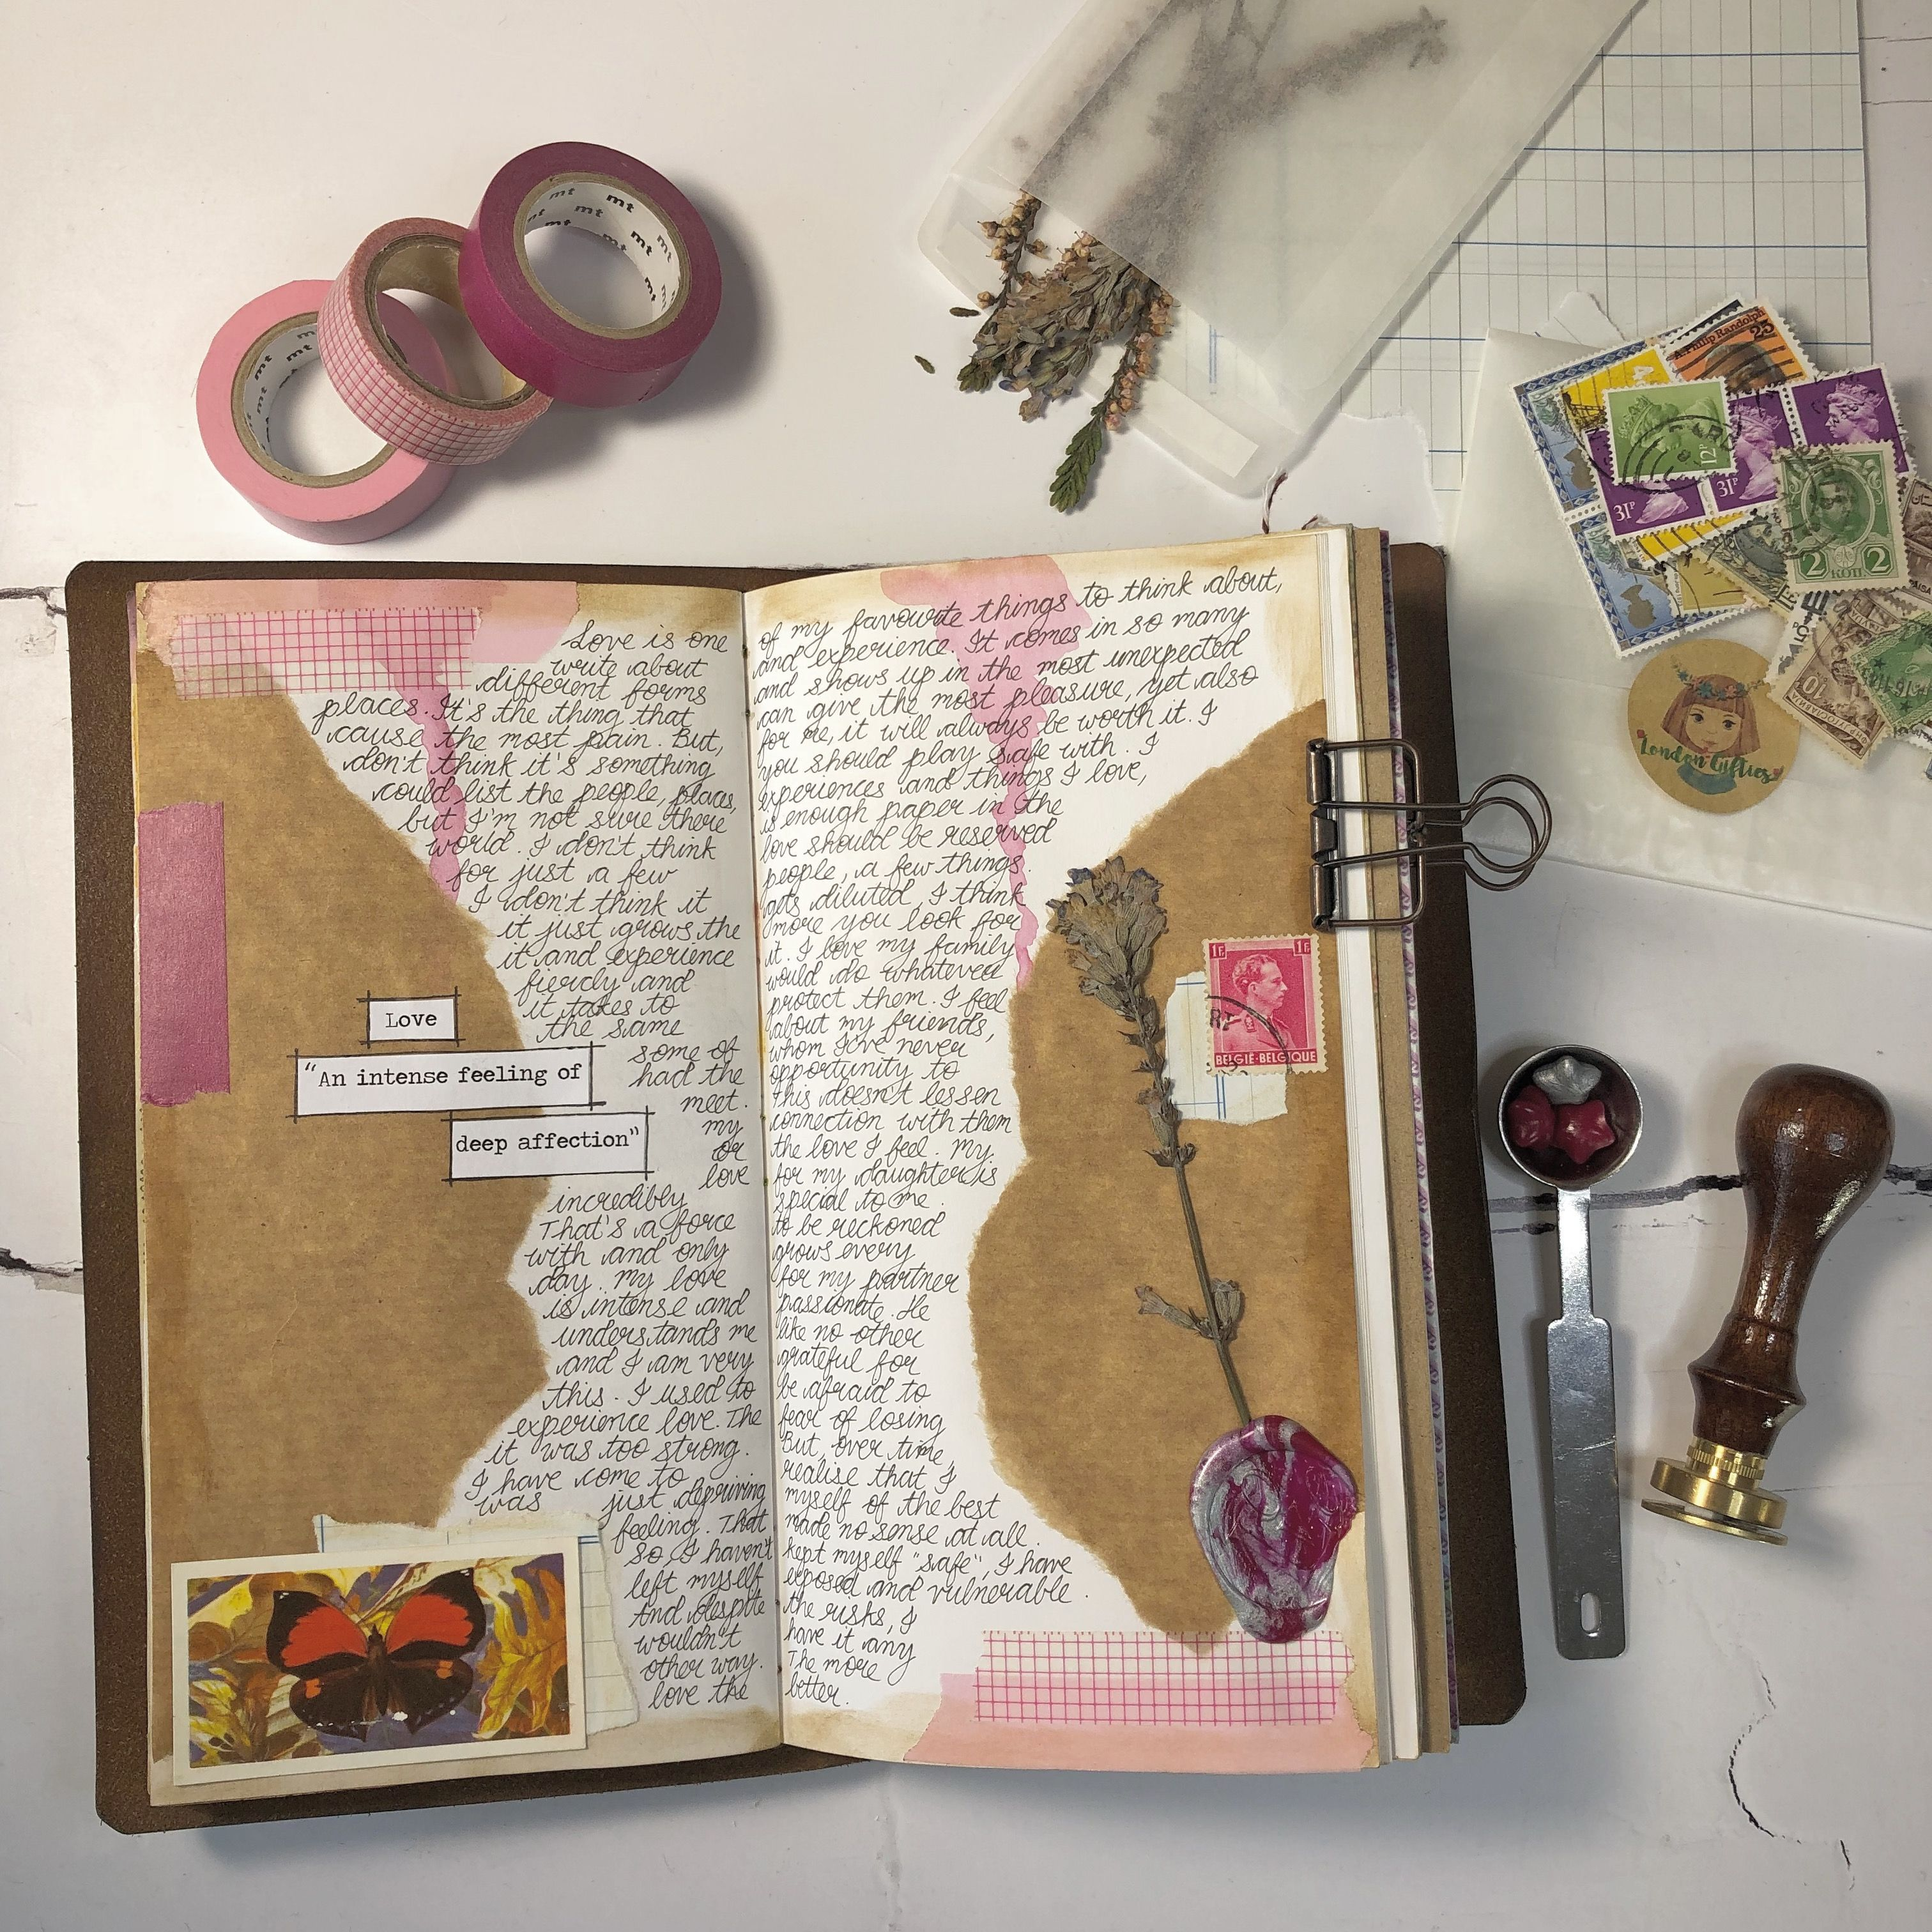 When life gets tough focus on the good stuff in your journal when life gets tough focus on the good stuff in your journal solutioingenieria Gallery